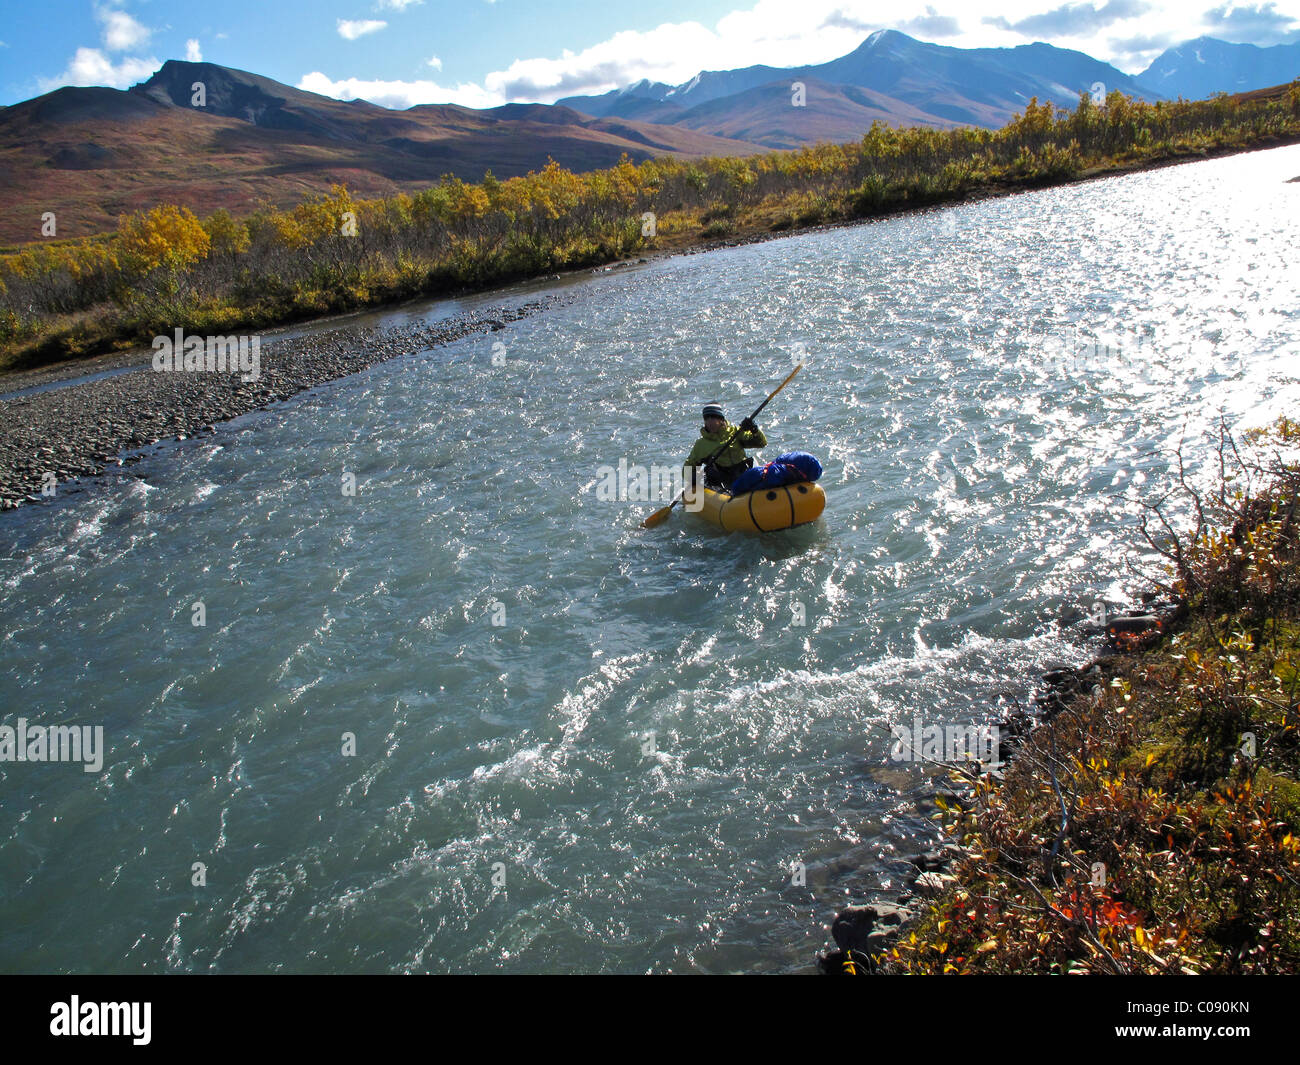 Woman packrafts down the Sanctuary River in Denali National Park, Interior Alaska, Autumn Stock Photo